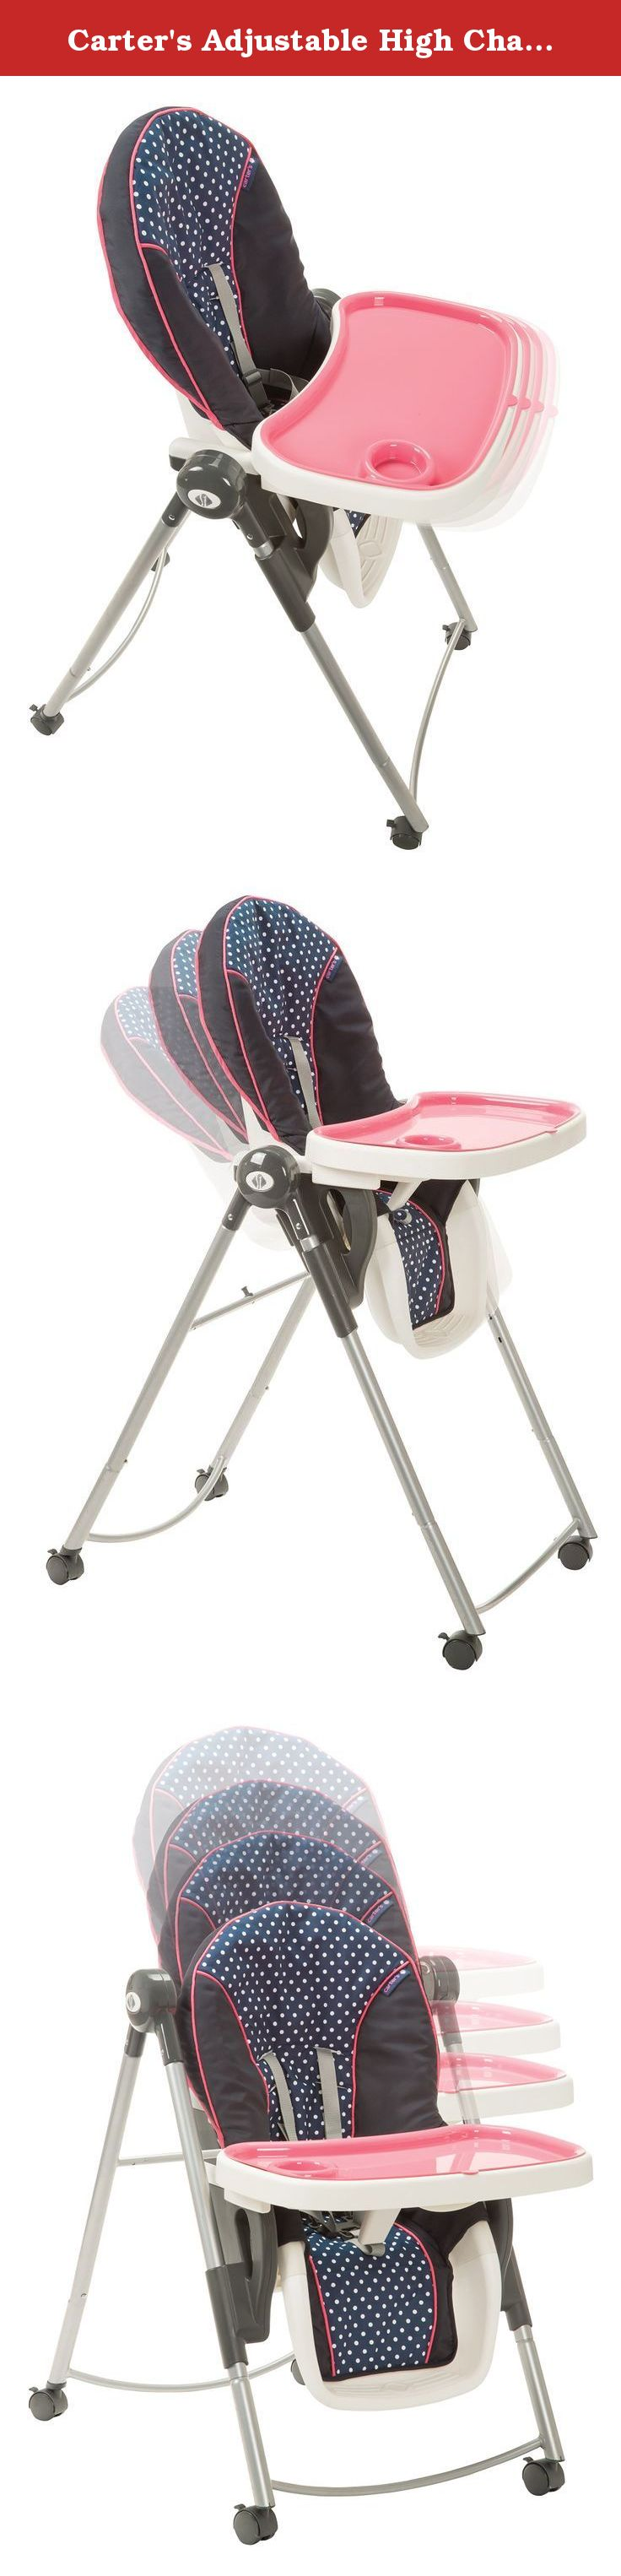 Carter s Adjustable High Chair Cute as a Hoot The Carter s